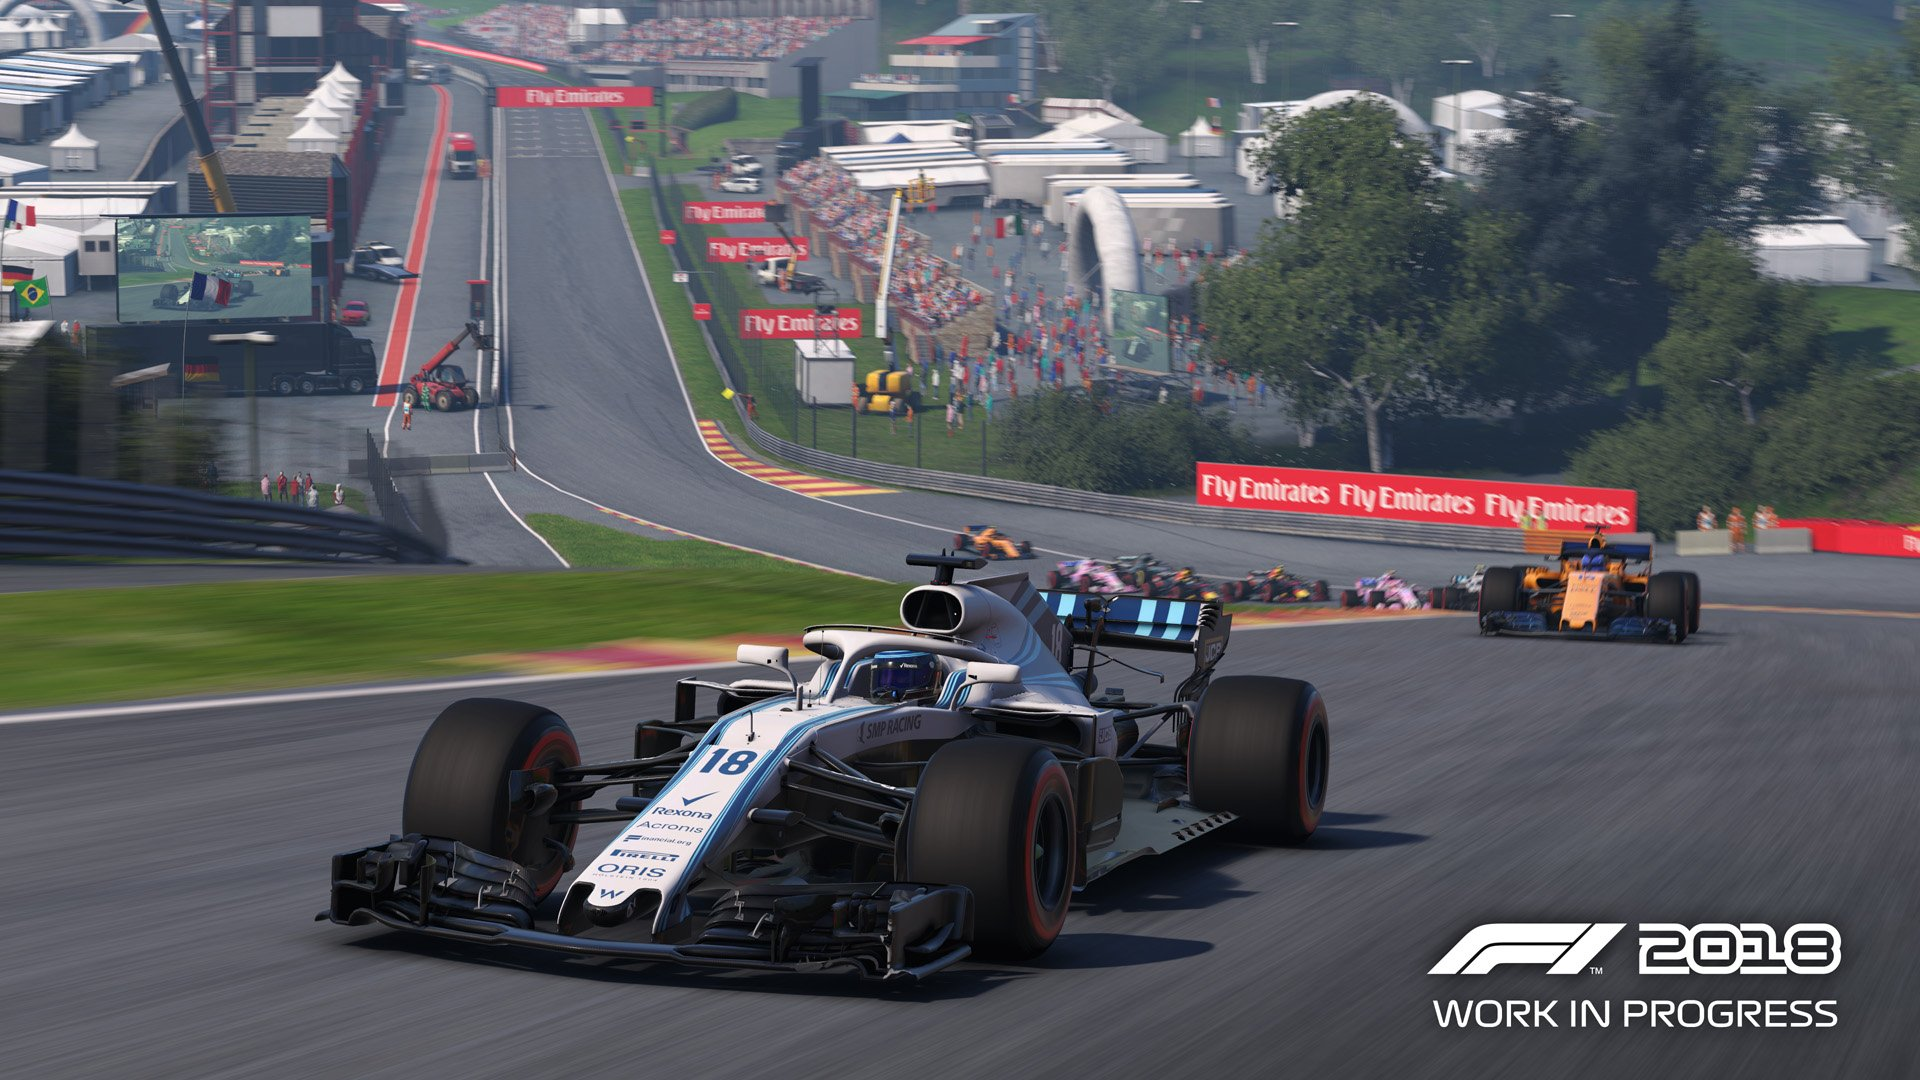 F1 2018 release day preview 2